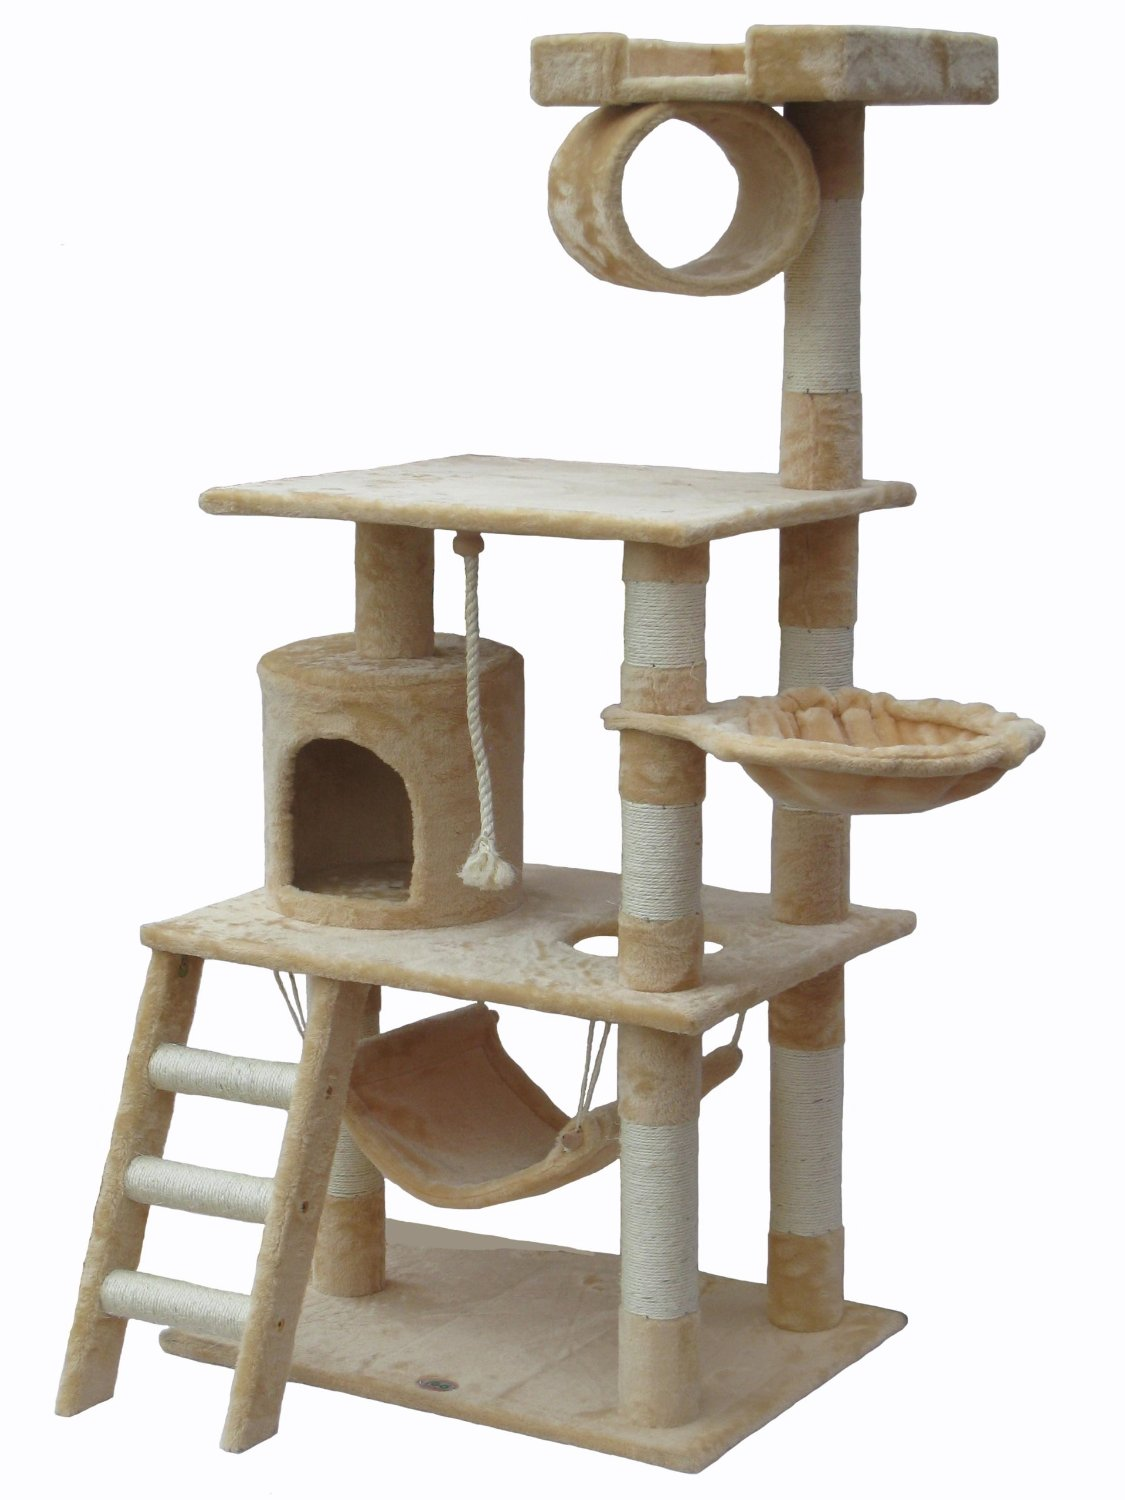 Best cat tree buyers guide crazy cat lady magazine for Diy cat tree pvc pipe